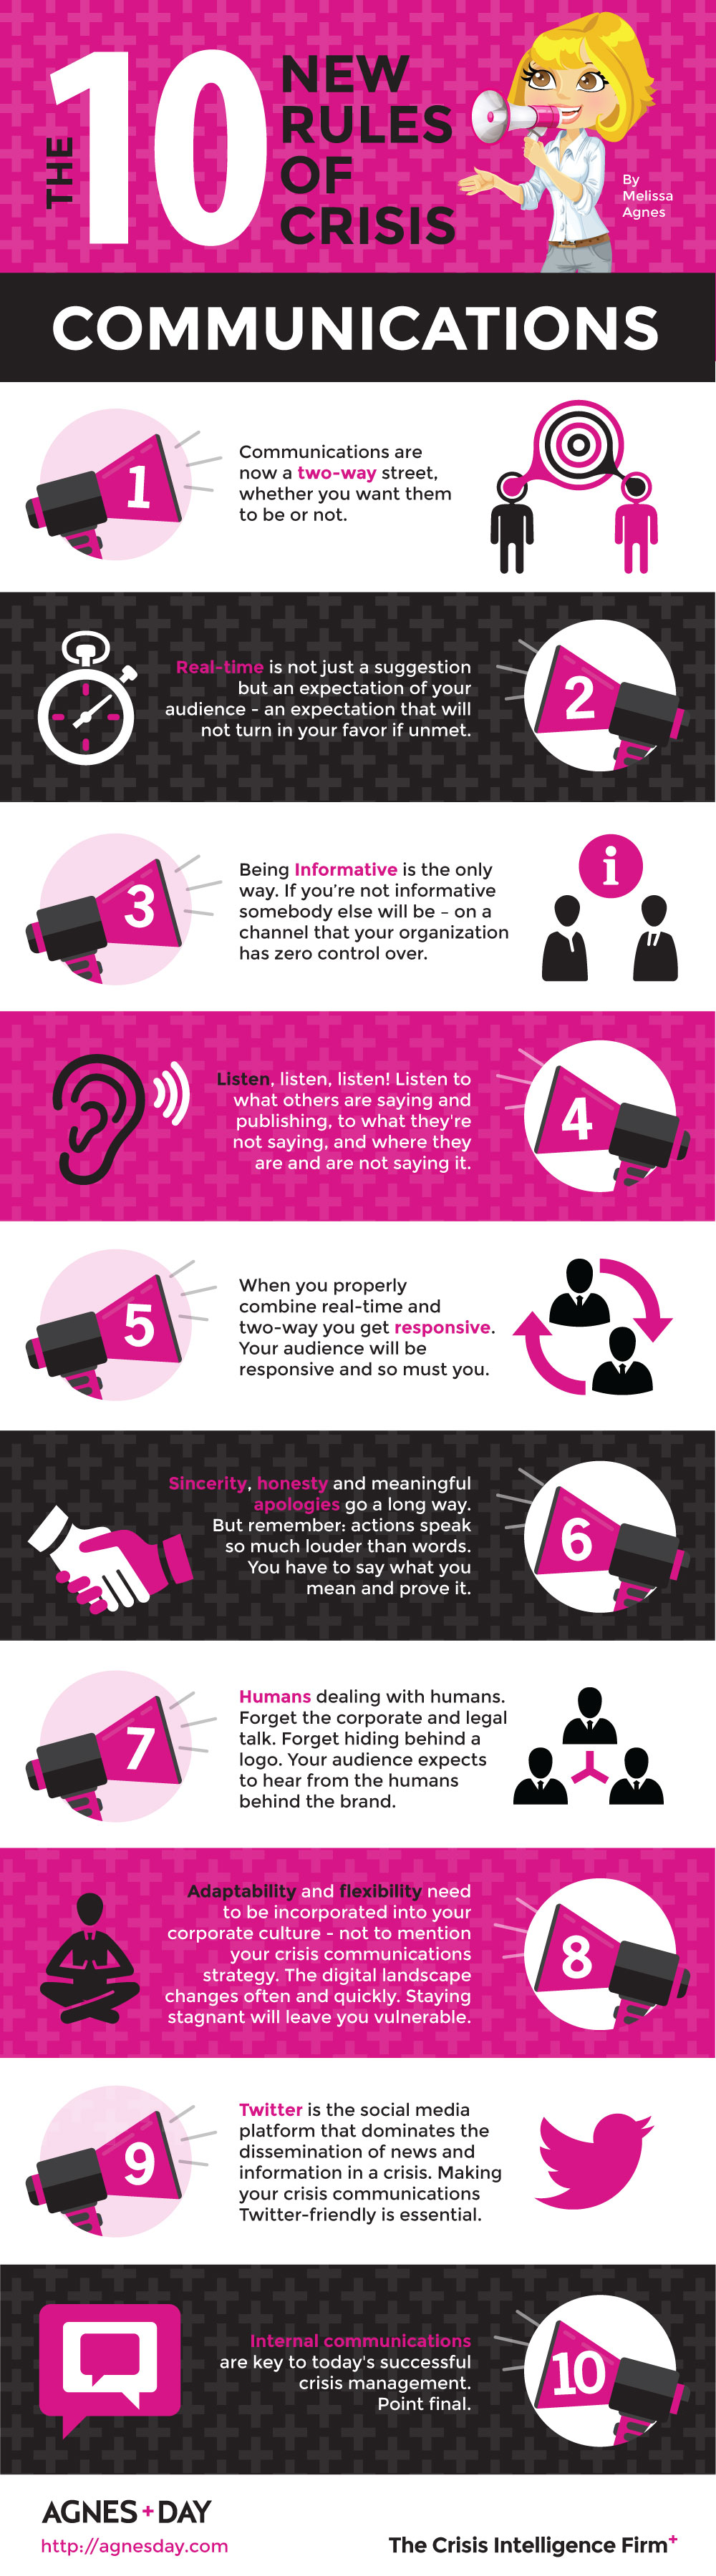 10 New Rules of Crisis Communications - Infographic